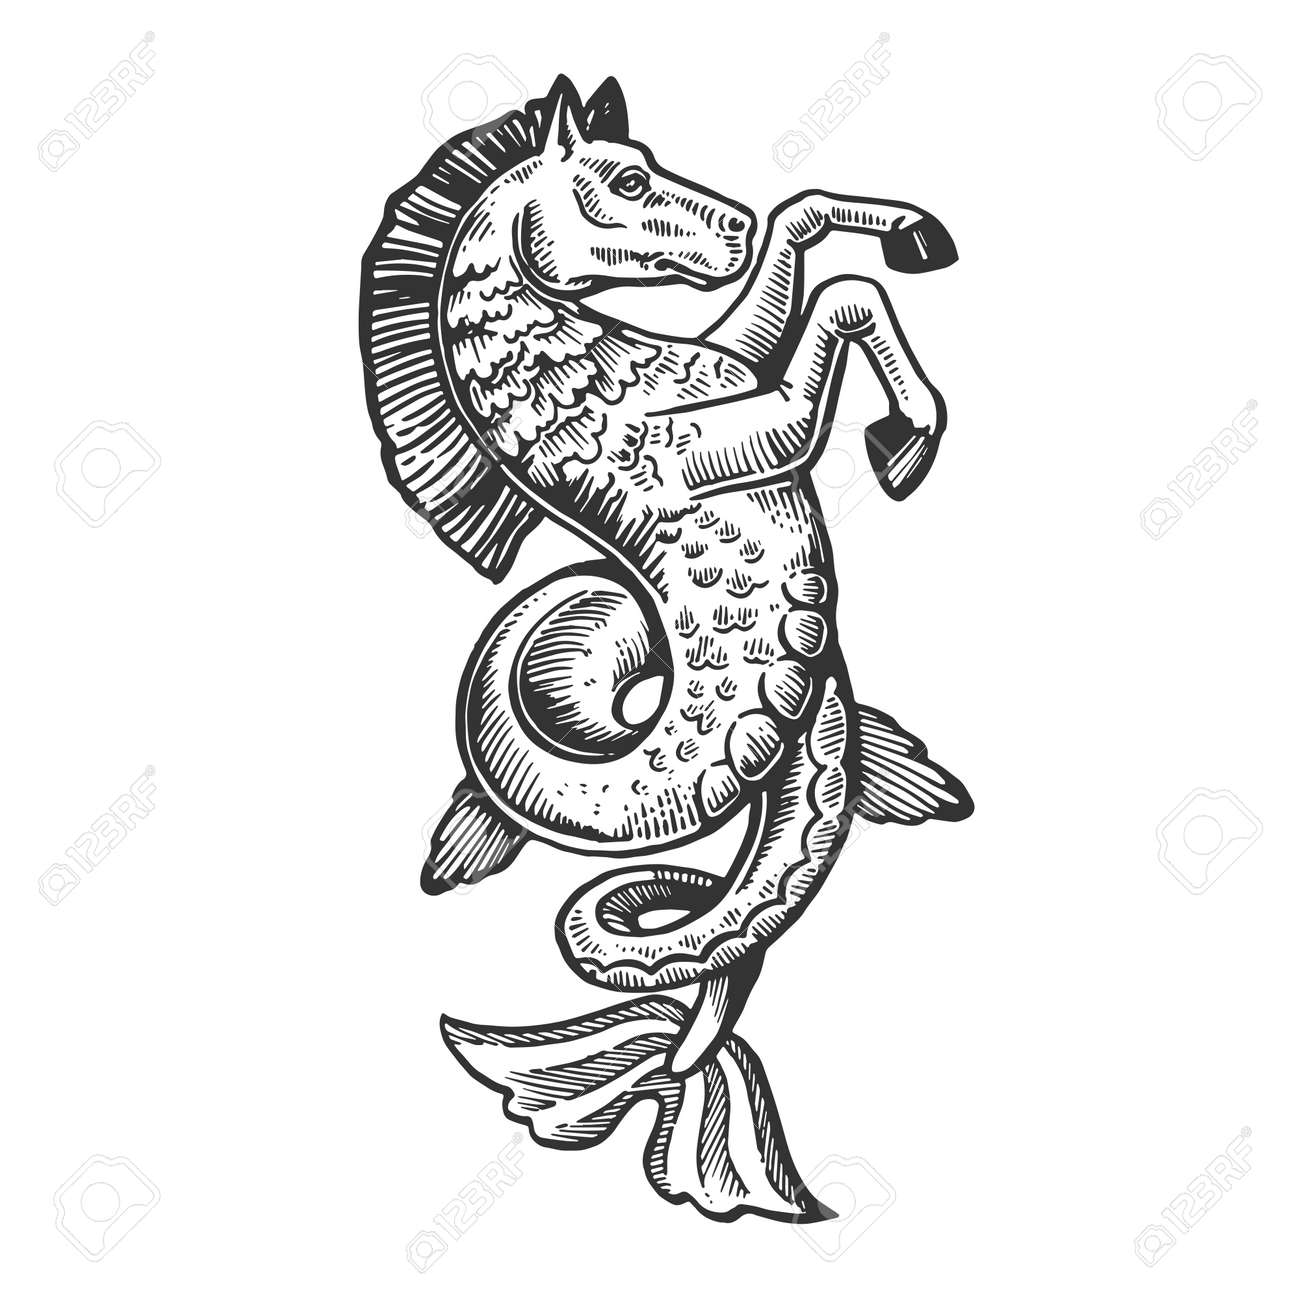 Fantastic fabulous fish horse animal engraving vector illustration. Scratch board style imitation. Black and white hand drawn image. - 106884299